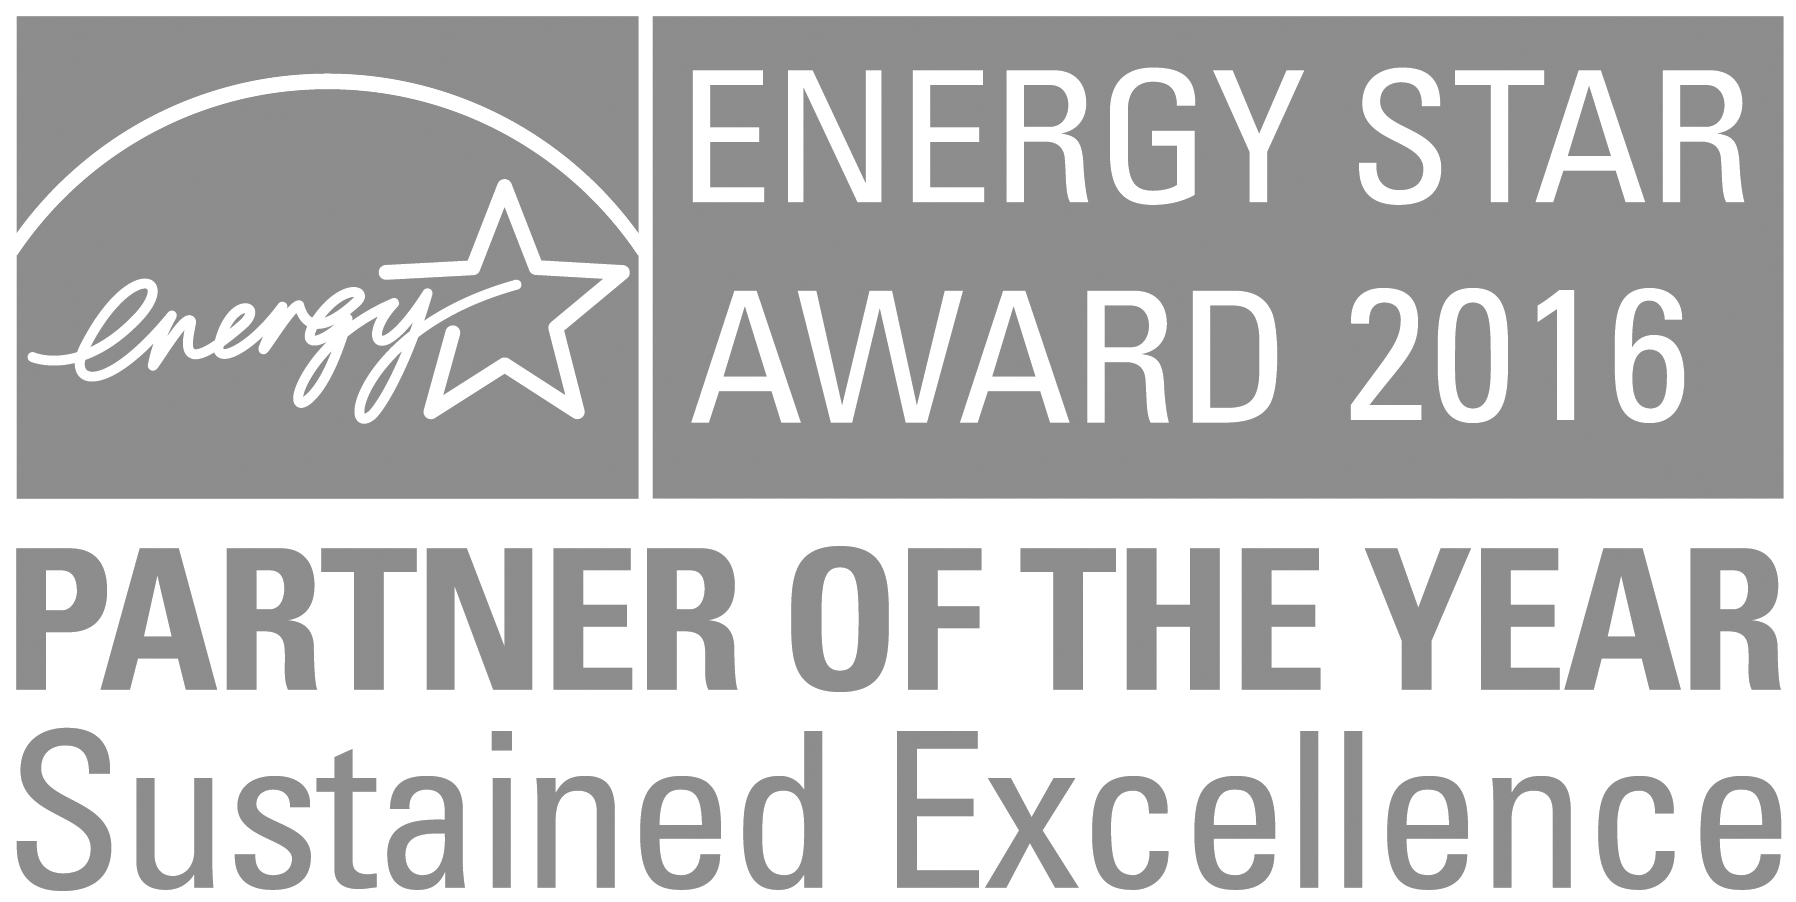 Goby Sustainability Consulting - ENERGY STAR Partner of the Year Sustained Excellence